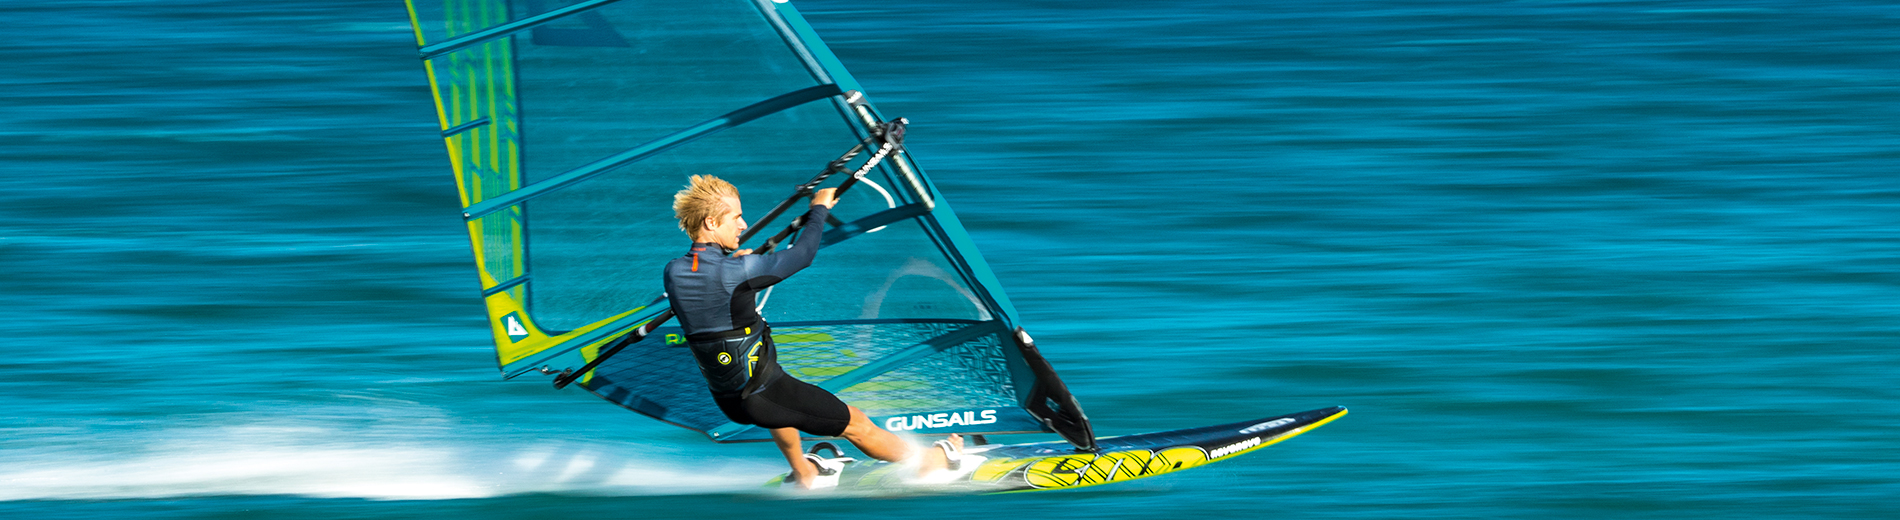 GUNSAILS | Valentin Böckler - PWA Worldtour Rider, EFPT Freestyle Windsurfing, German Freestyle Battles